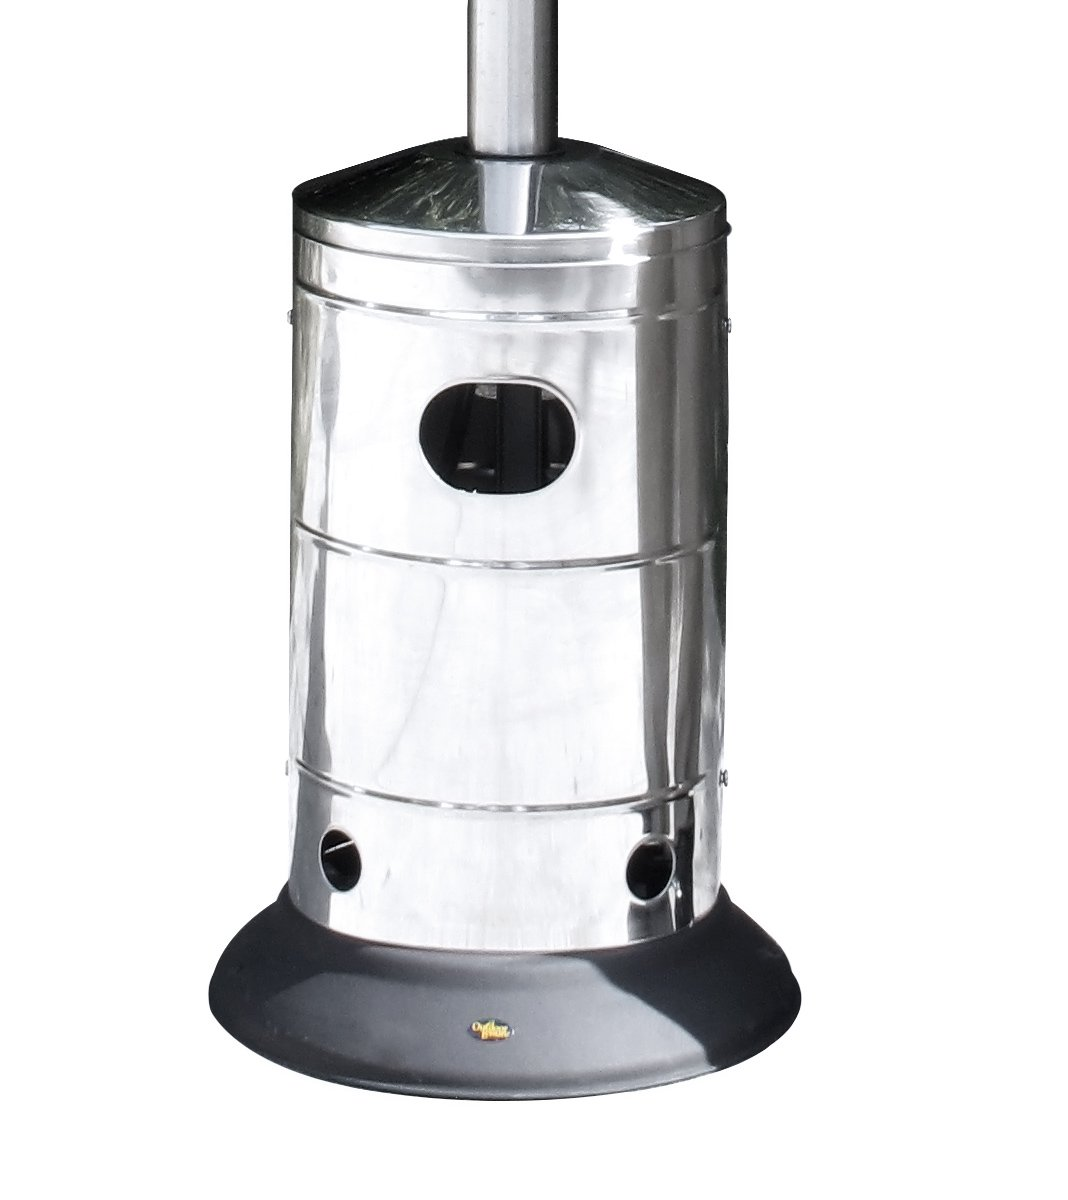 Heat N Go Pro Commercial Quality Stainless Steel Patio Heater